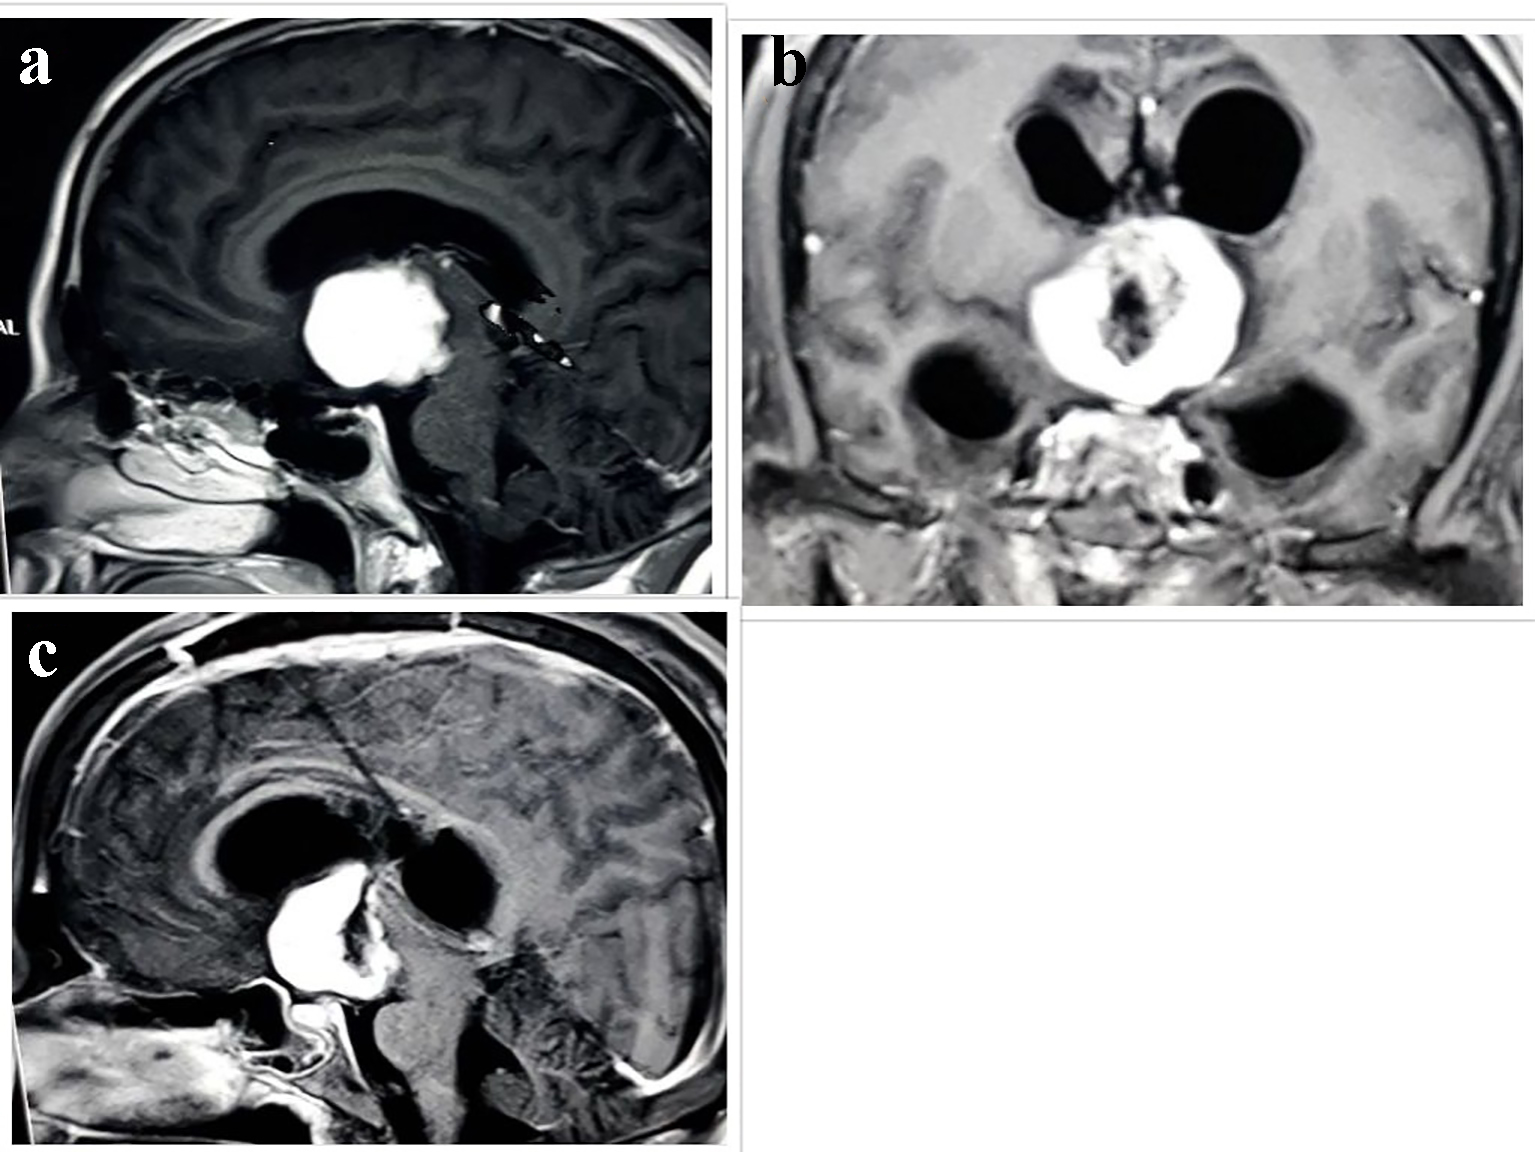 Chordoid Glioma of Third Ventricle Presenting as Primary Polydipsia